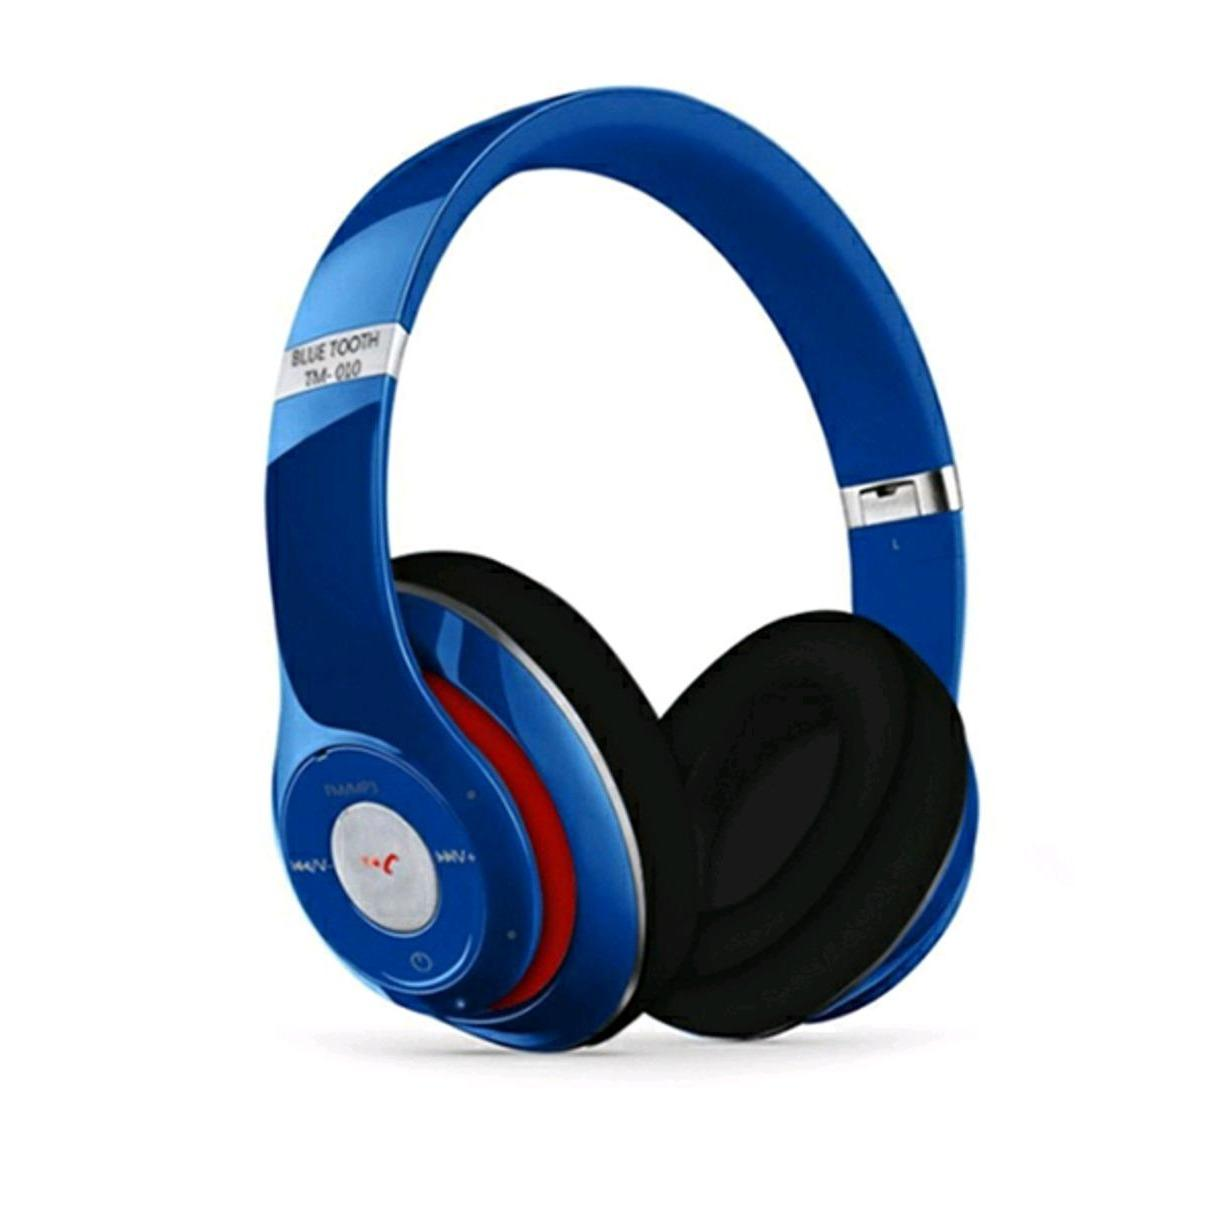 Beli Jbl Tm 010S Headphone Stereo Bluetooth Jbl Yang Bagus